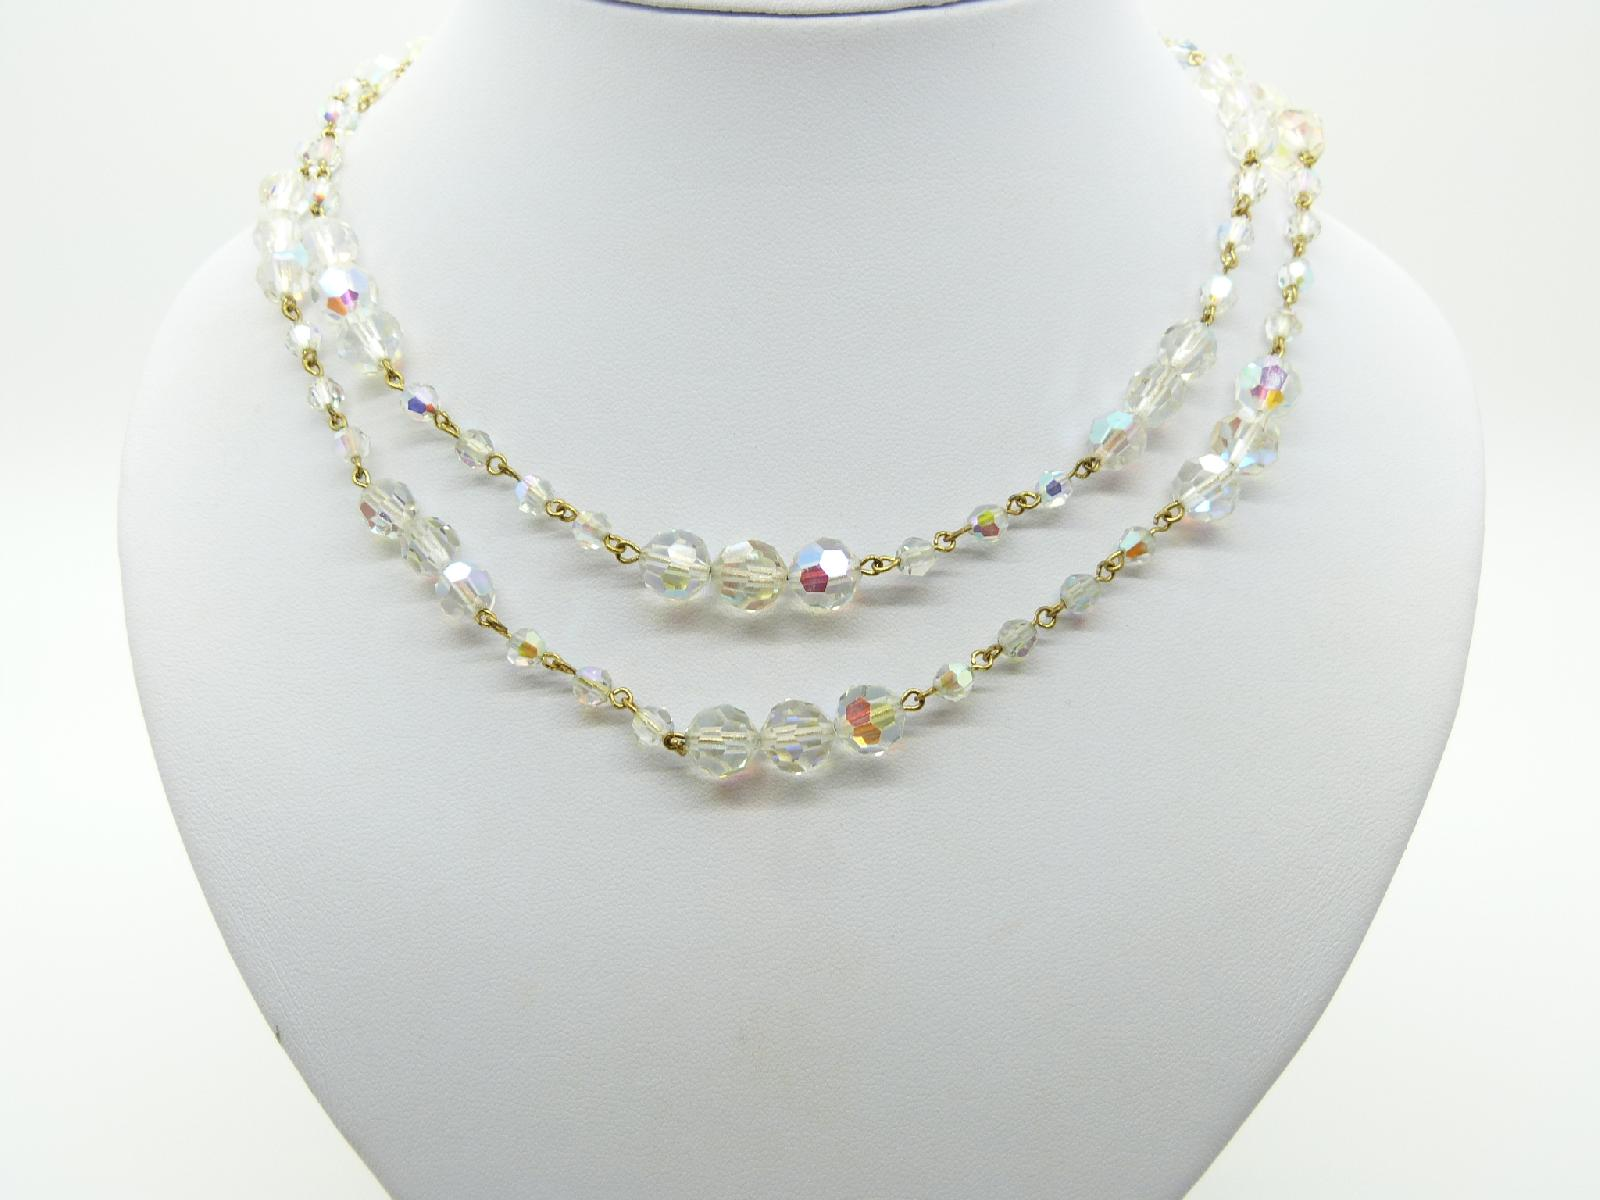 Vintage 30s Long AB Crystal Glass Bead Flapper Necklace Diamante Clasp